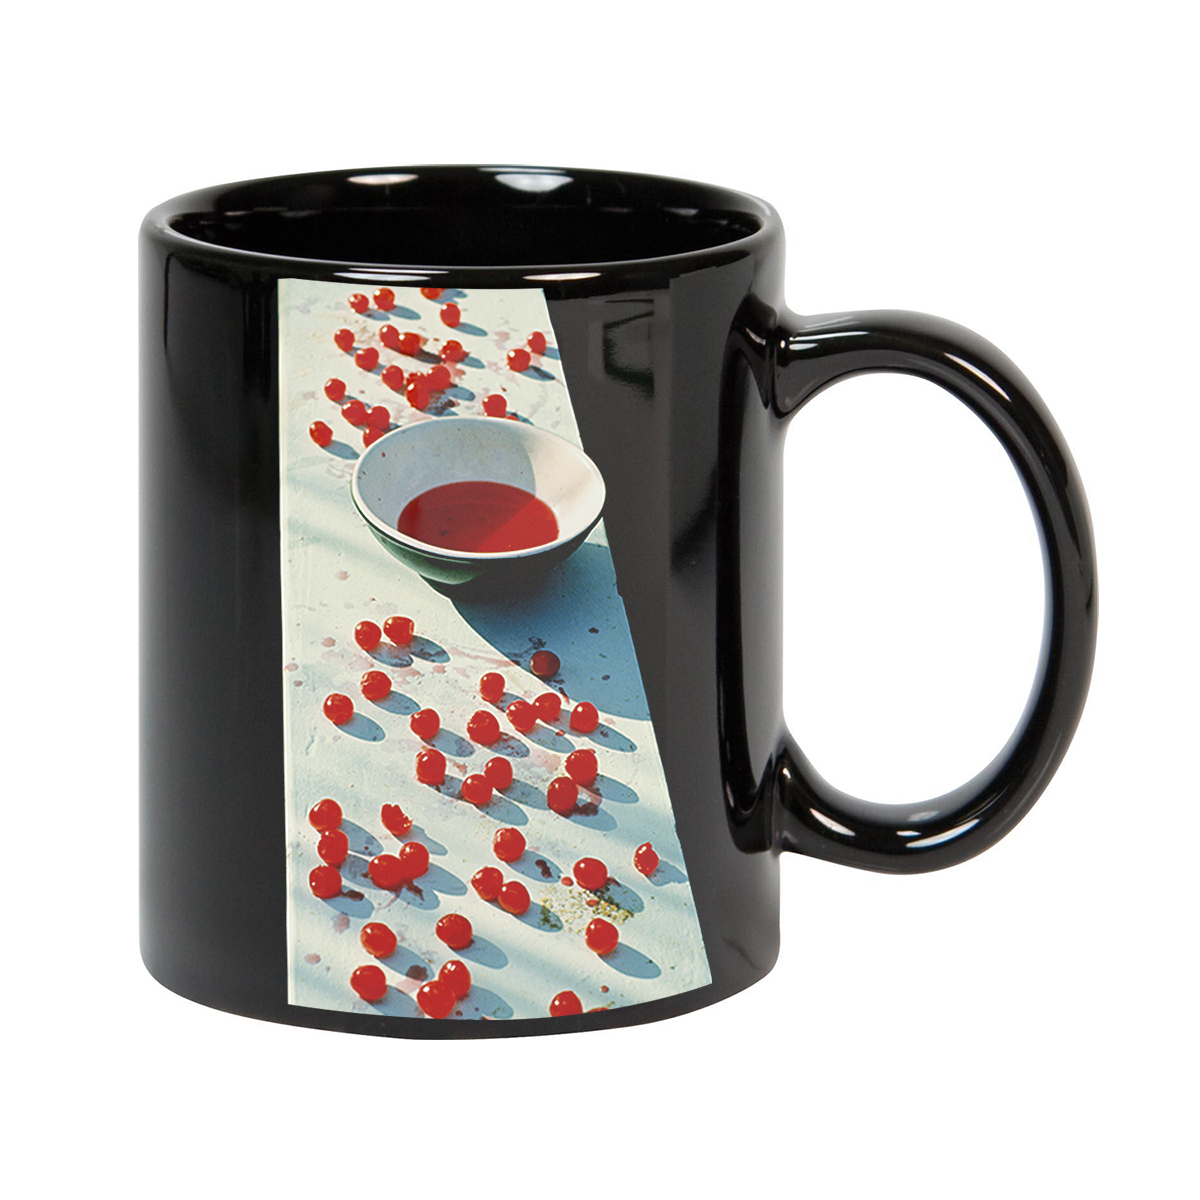 McCartney Cherries Mug